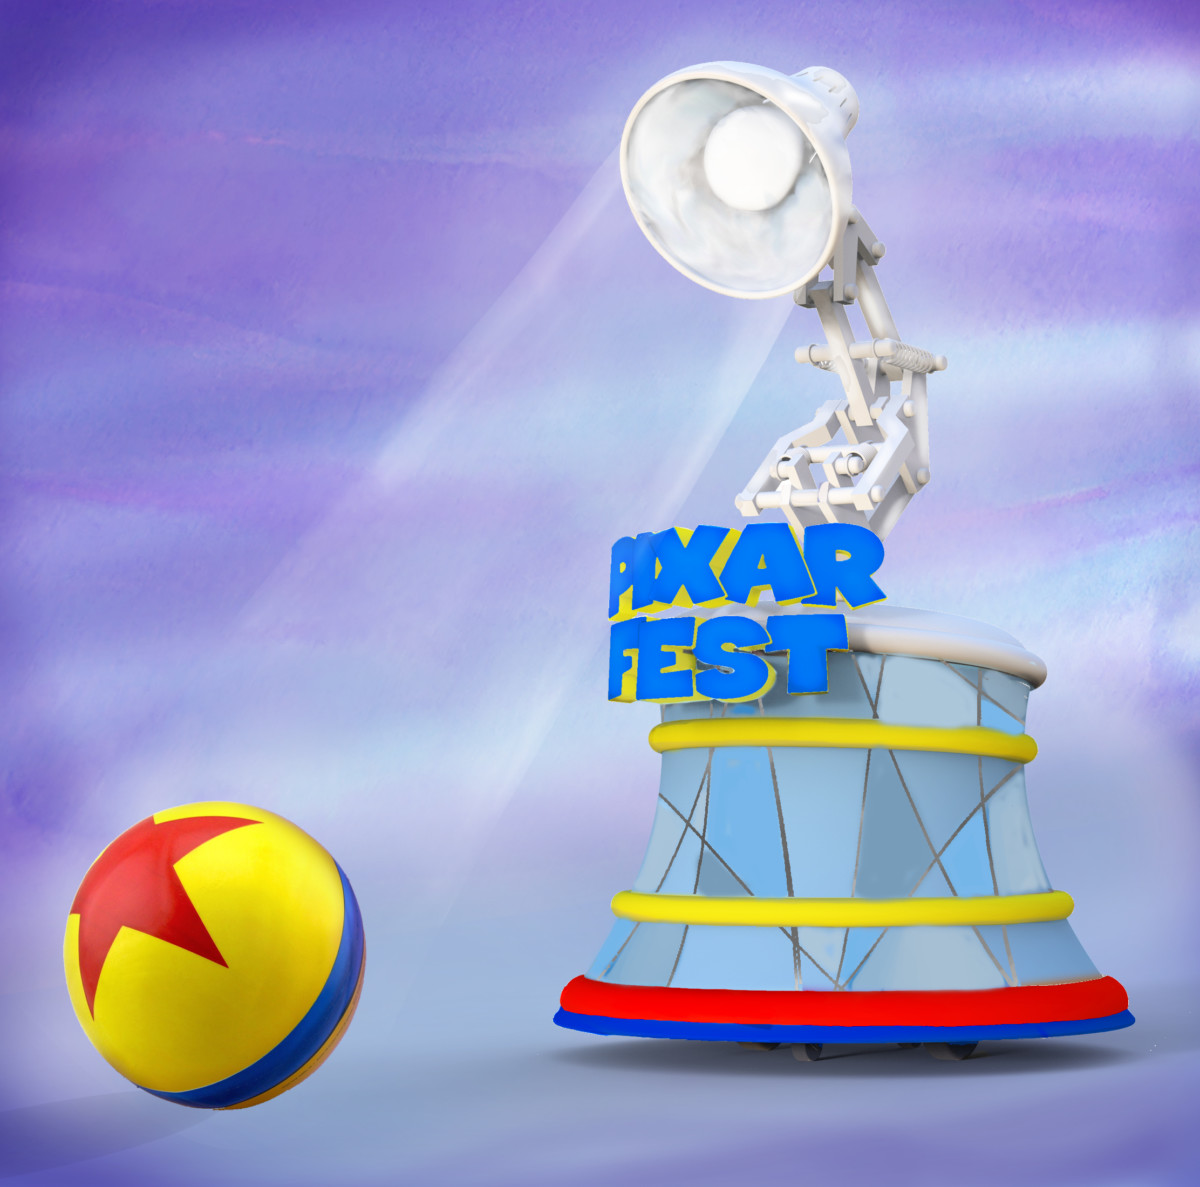 Pixar Lamp and Ball Coming to Pixar Play Parade at Disneyland Park